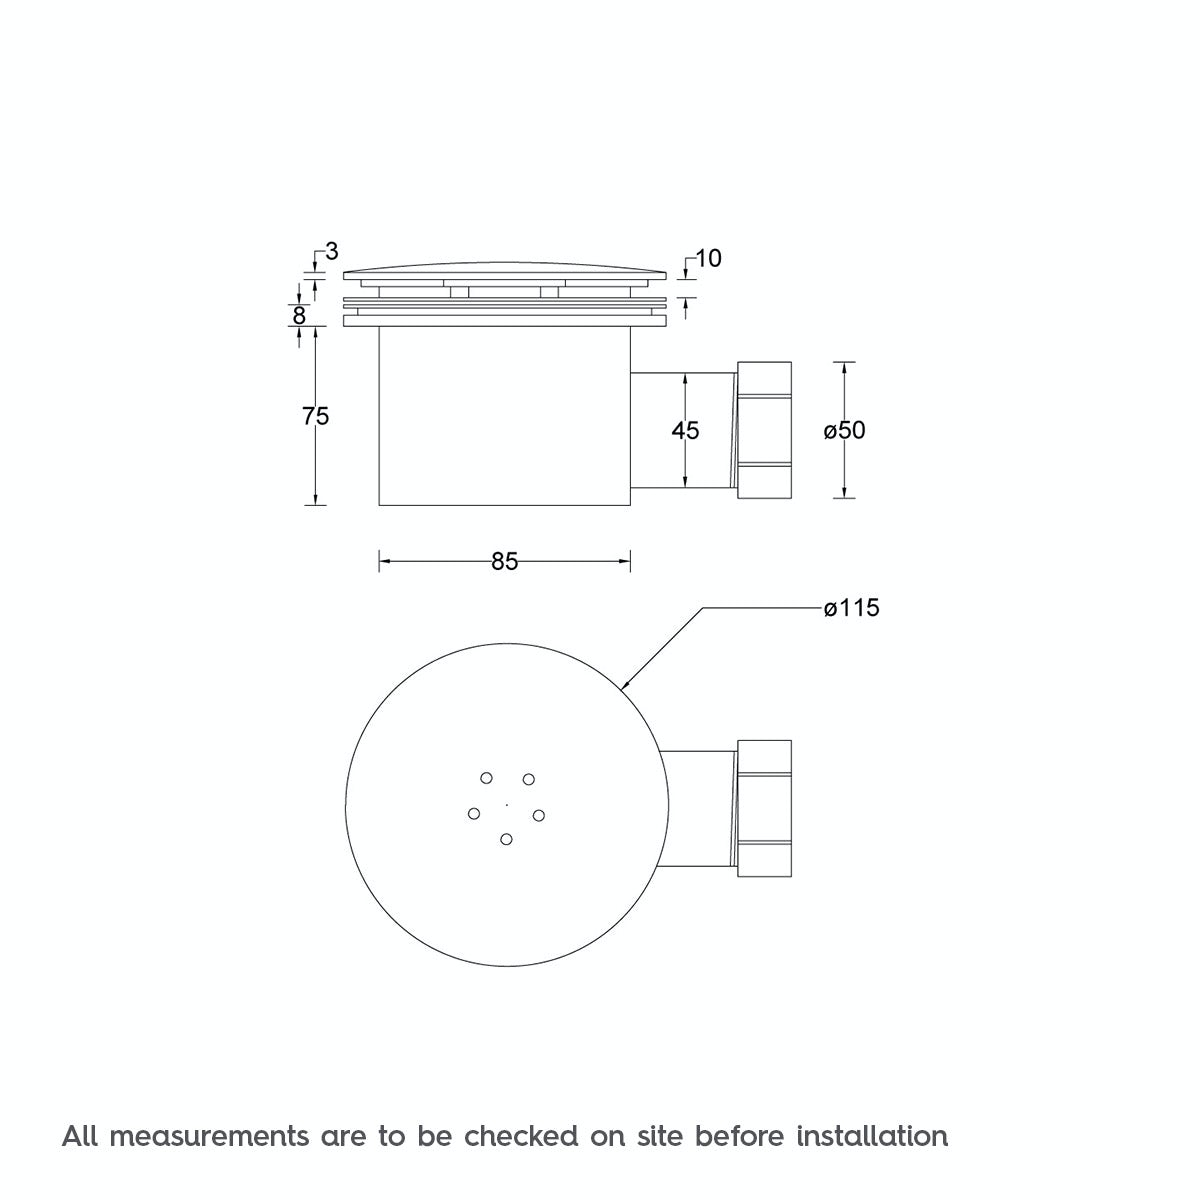 Dimensions for 90mm slimline shower tray waste